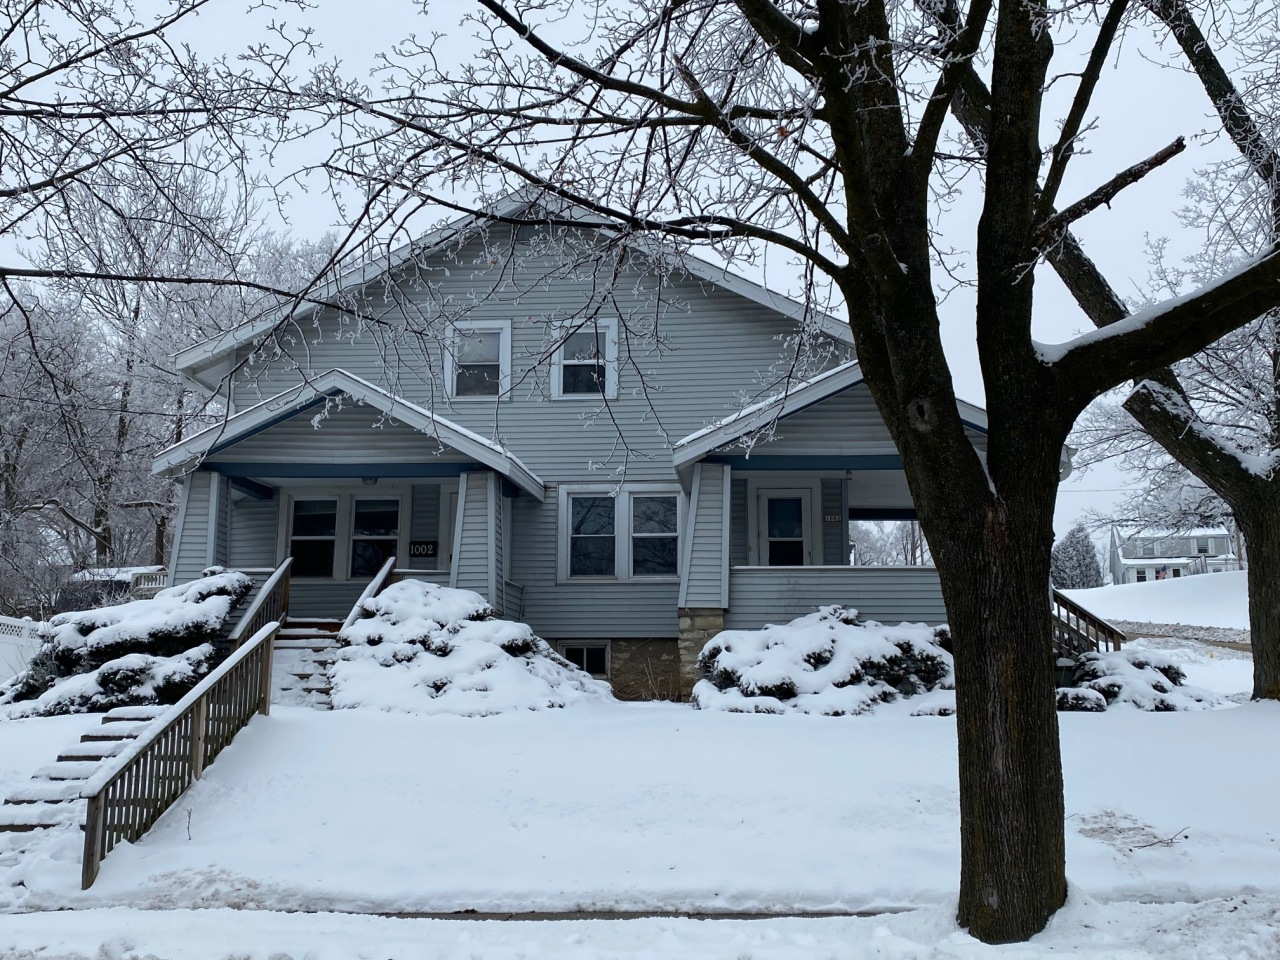 1002 Motor Ave, Waukesha, Wisconsin 53188, 6 Bedrooms Bedrooms, 12 Rooms Rooms,2 BathroomsBathrooms,Single-Family,For Sale,Motor Ave,1722946